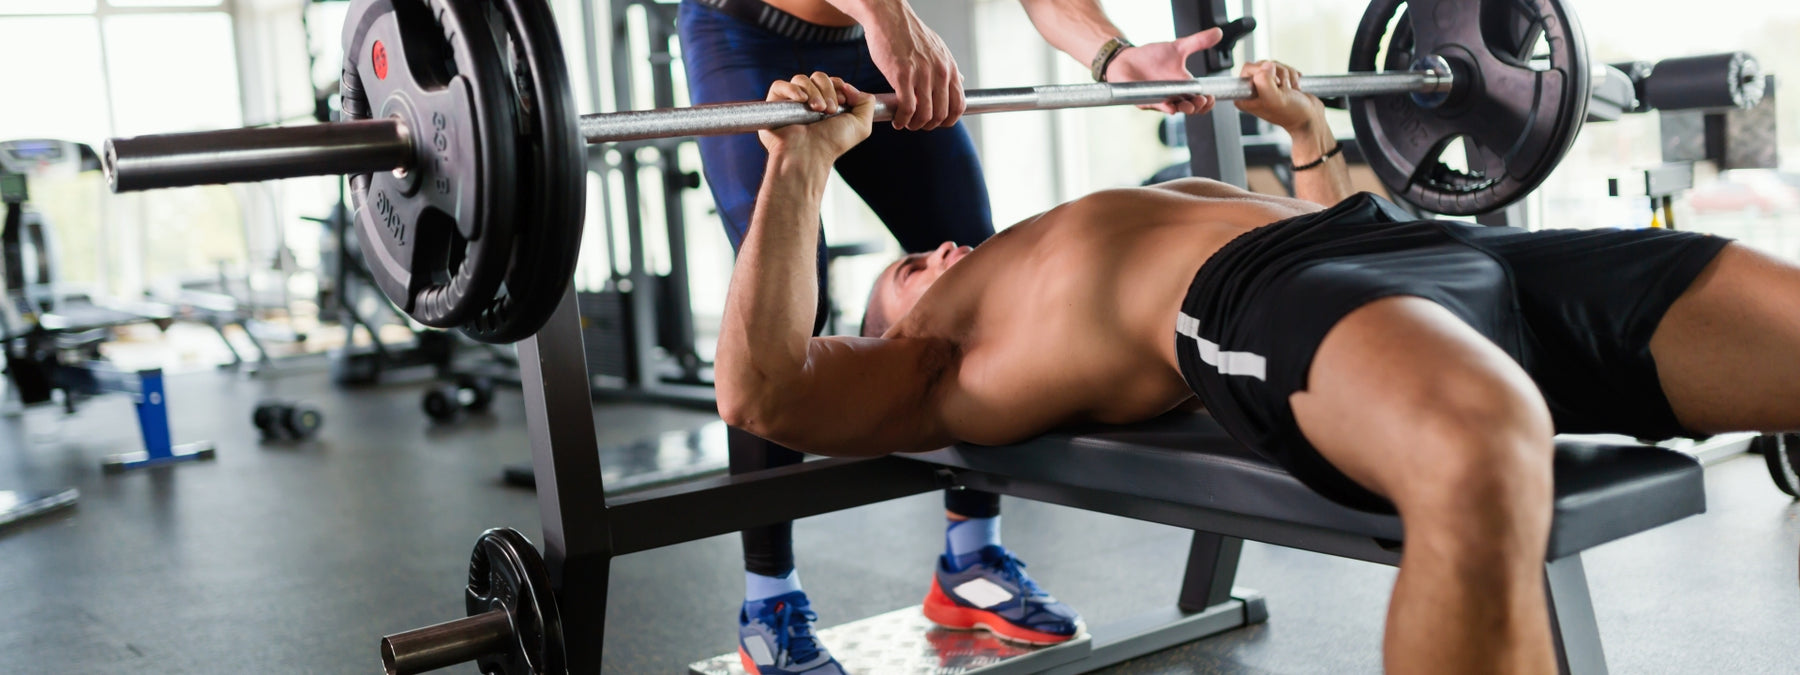 4 Things Every Strength Training Workout Needs